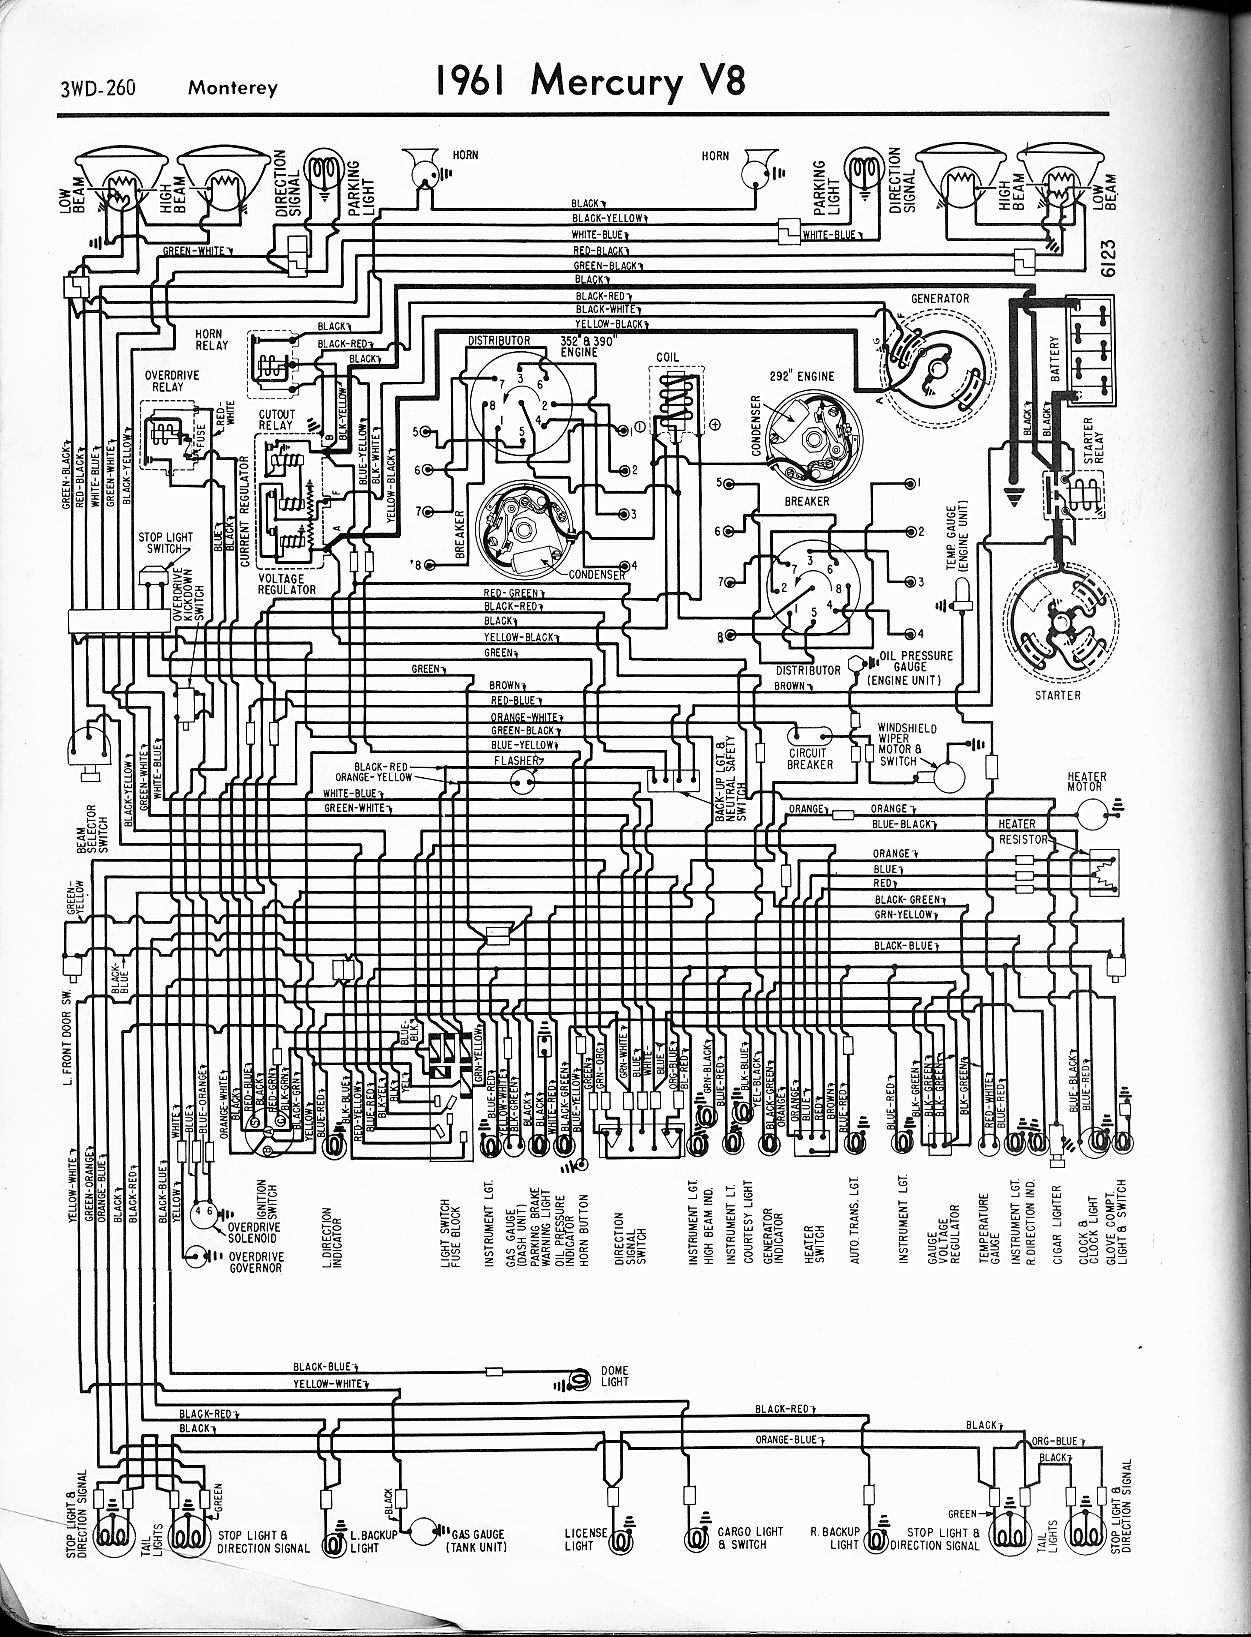 69 Cougar Wiring Diagram Diagrams Img Camaro Harness 68 Mercury Database Library 1968